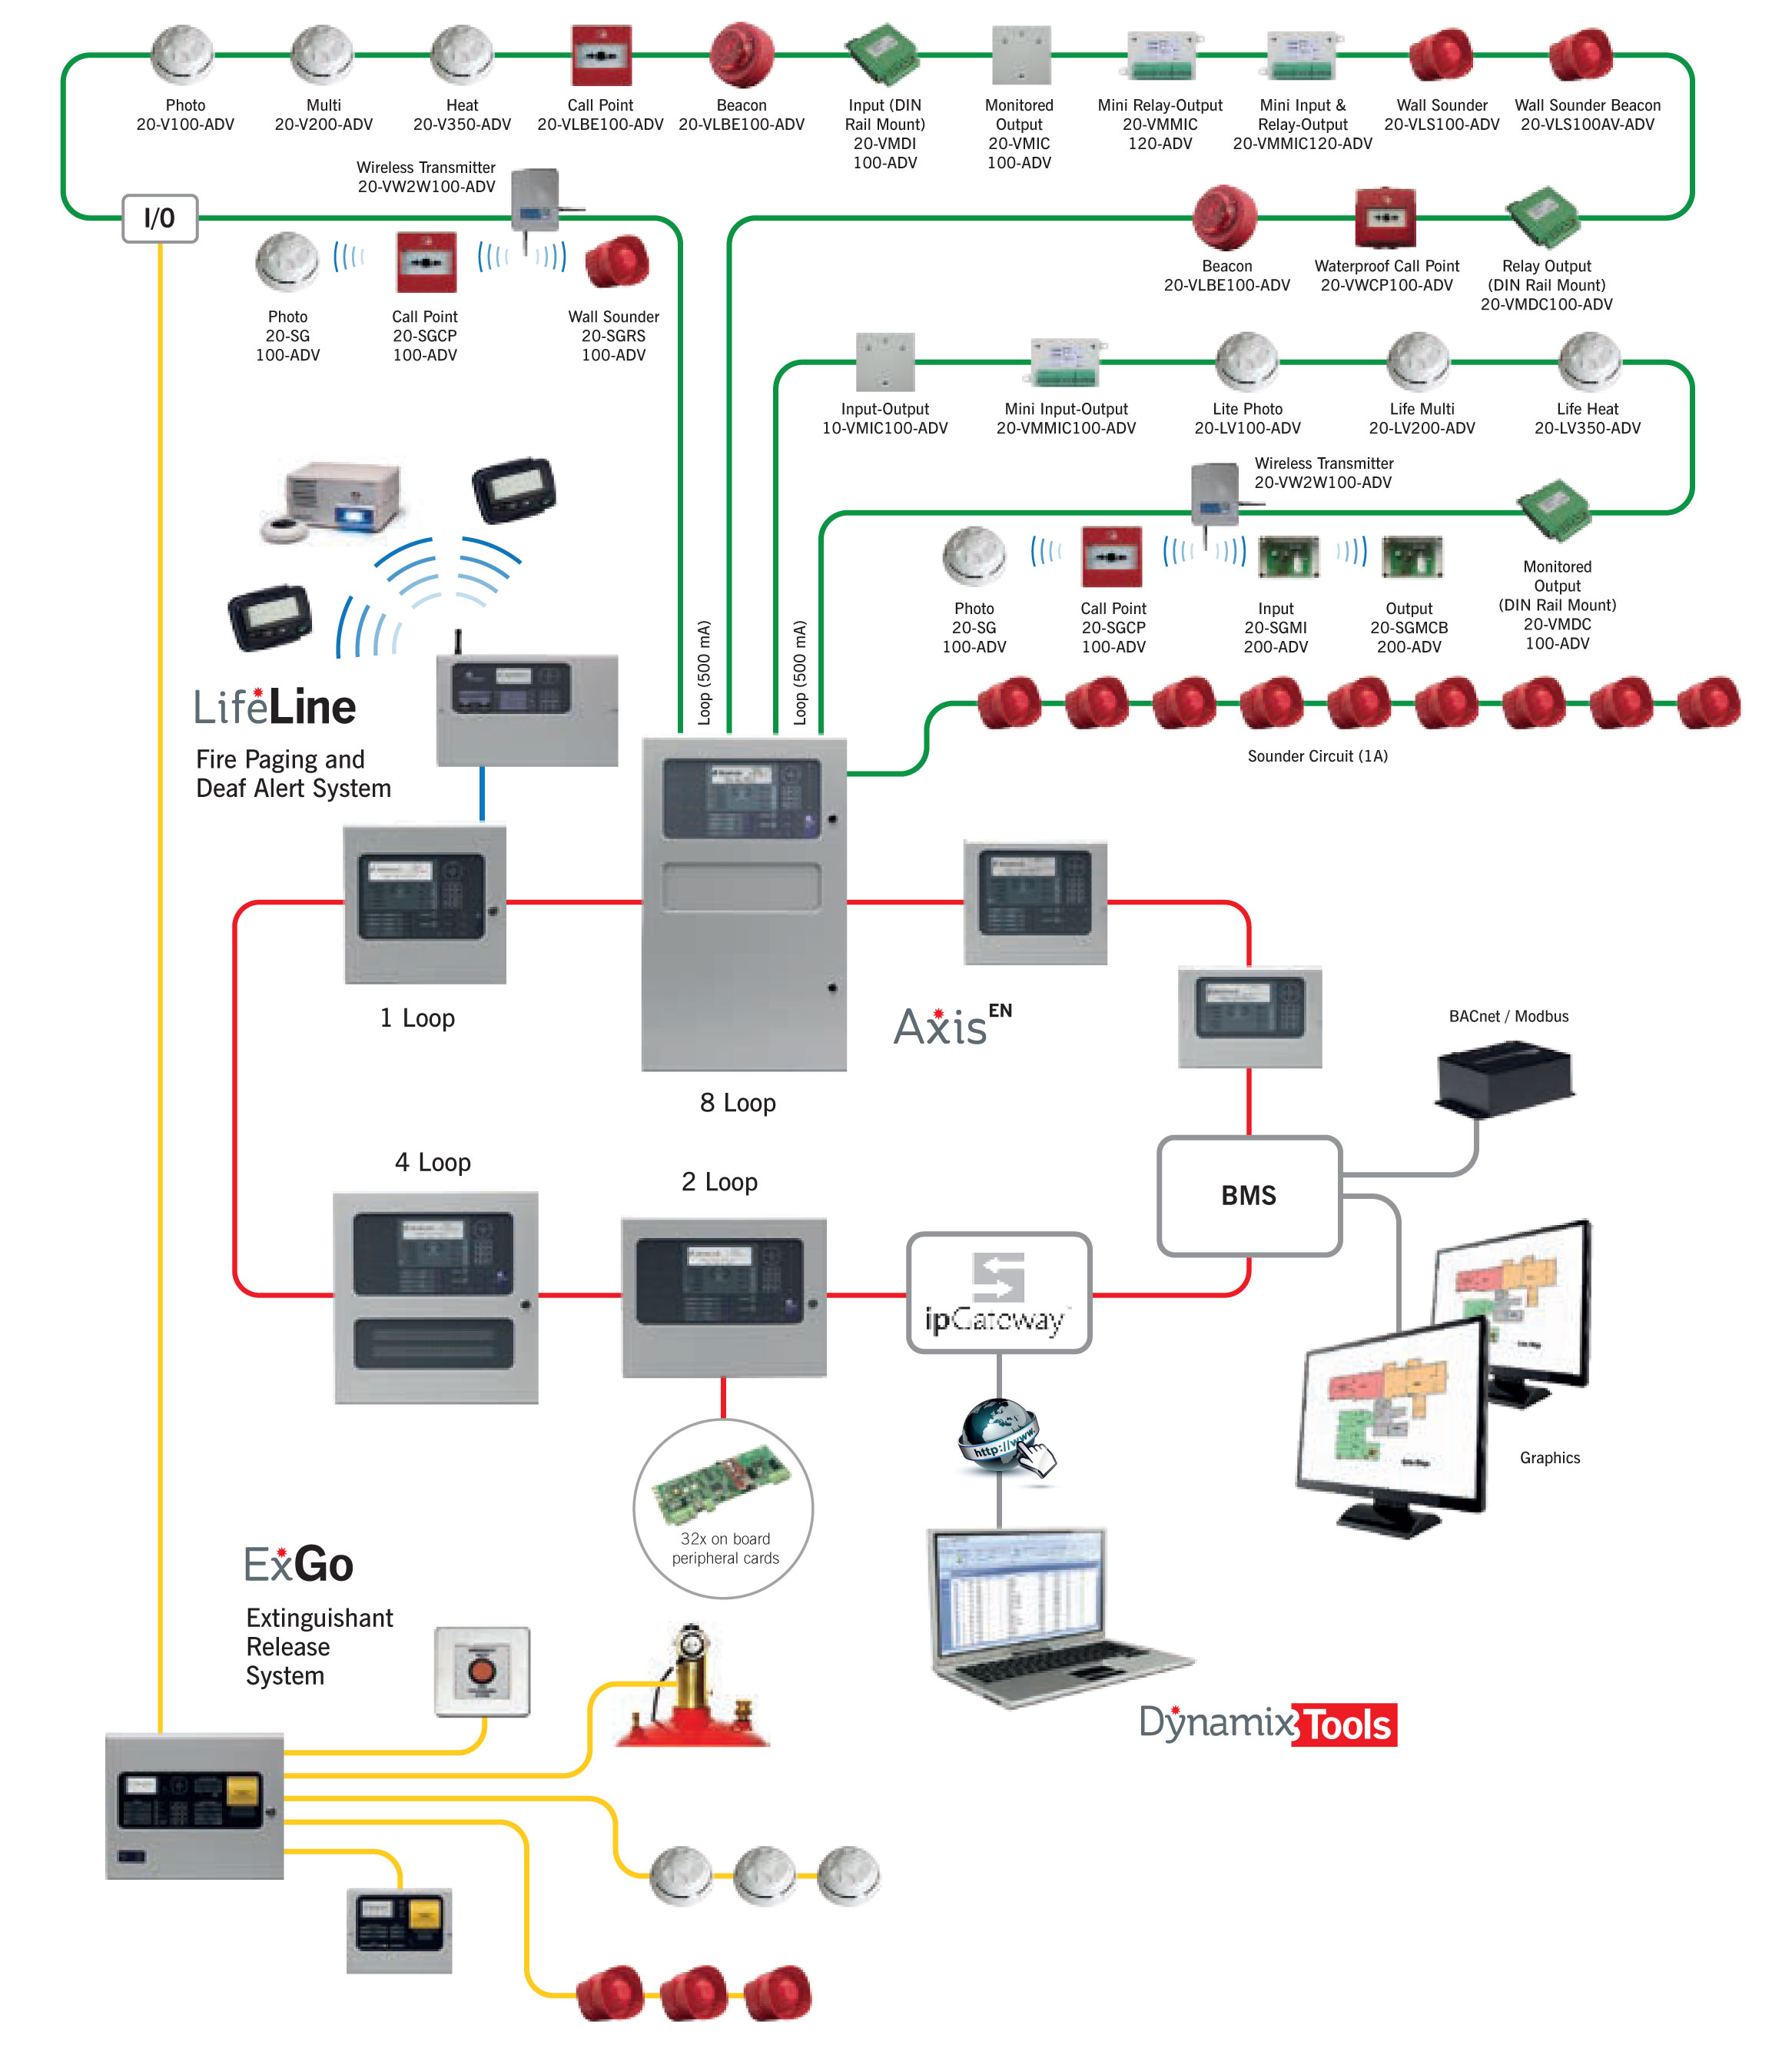 Stupendous Fire Alarm System Wiring Diagram Typical Get Free Image About Wiring Wiring Cloud Oideiuggs Outletorg